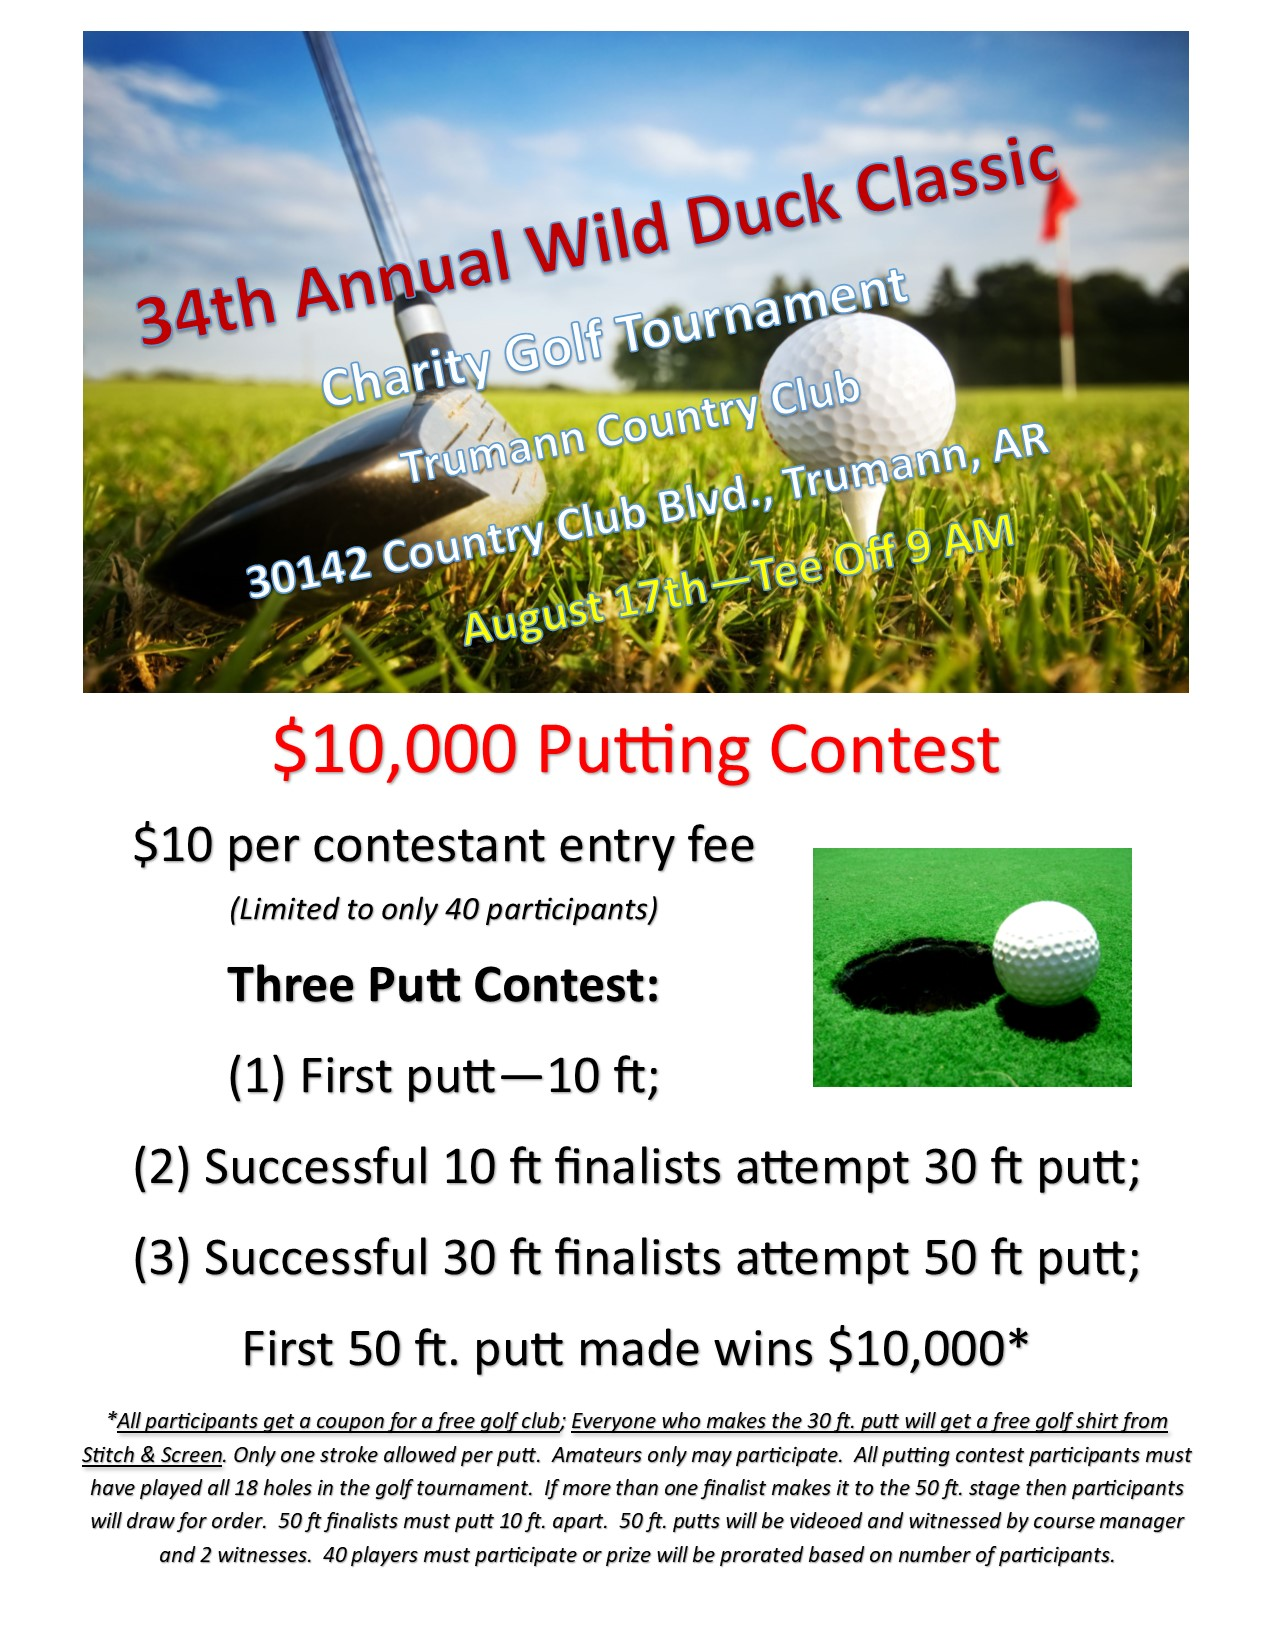 2019 Putting Contest Flier